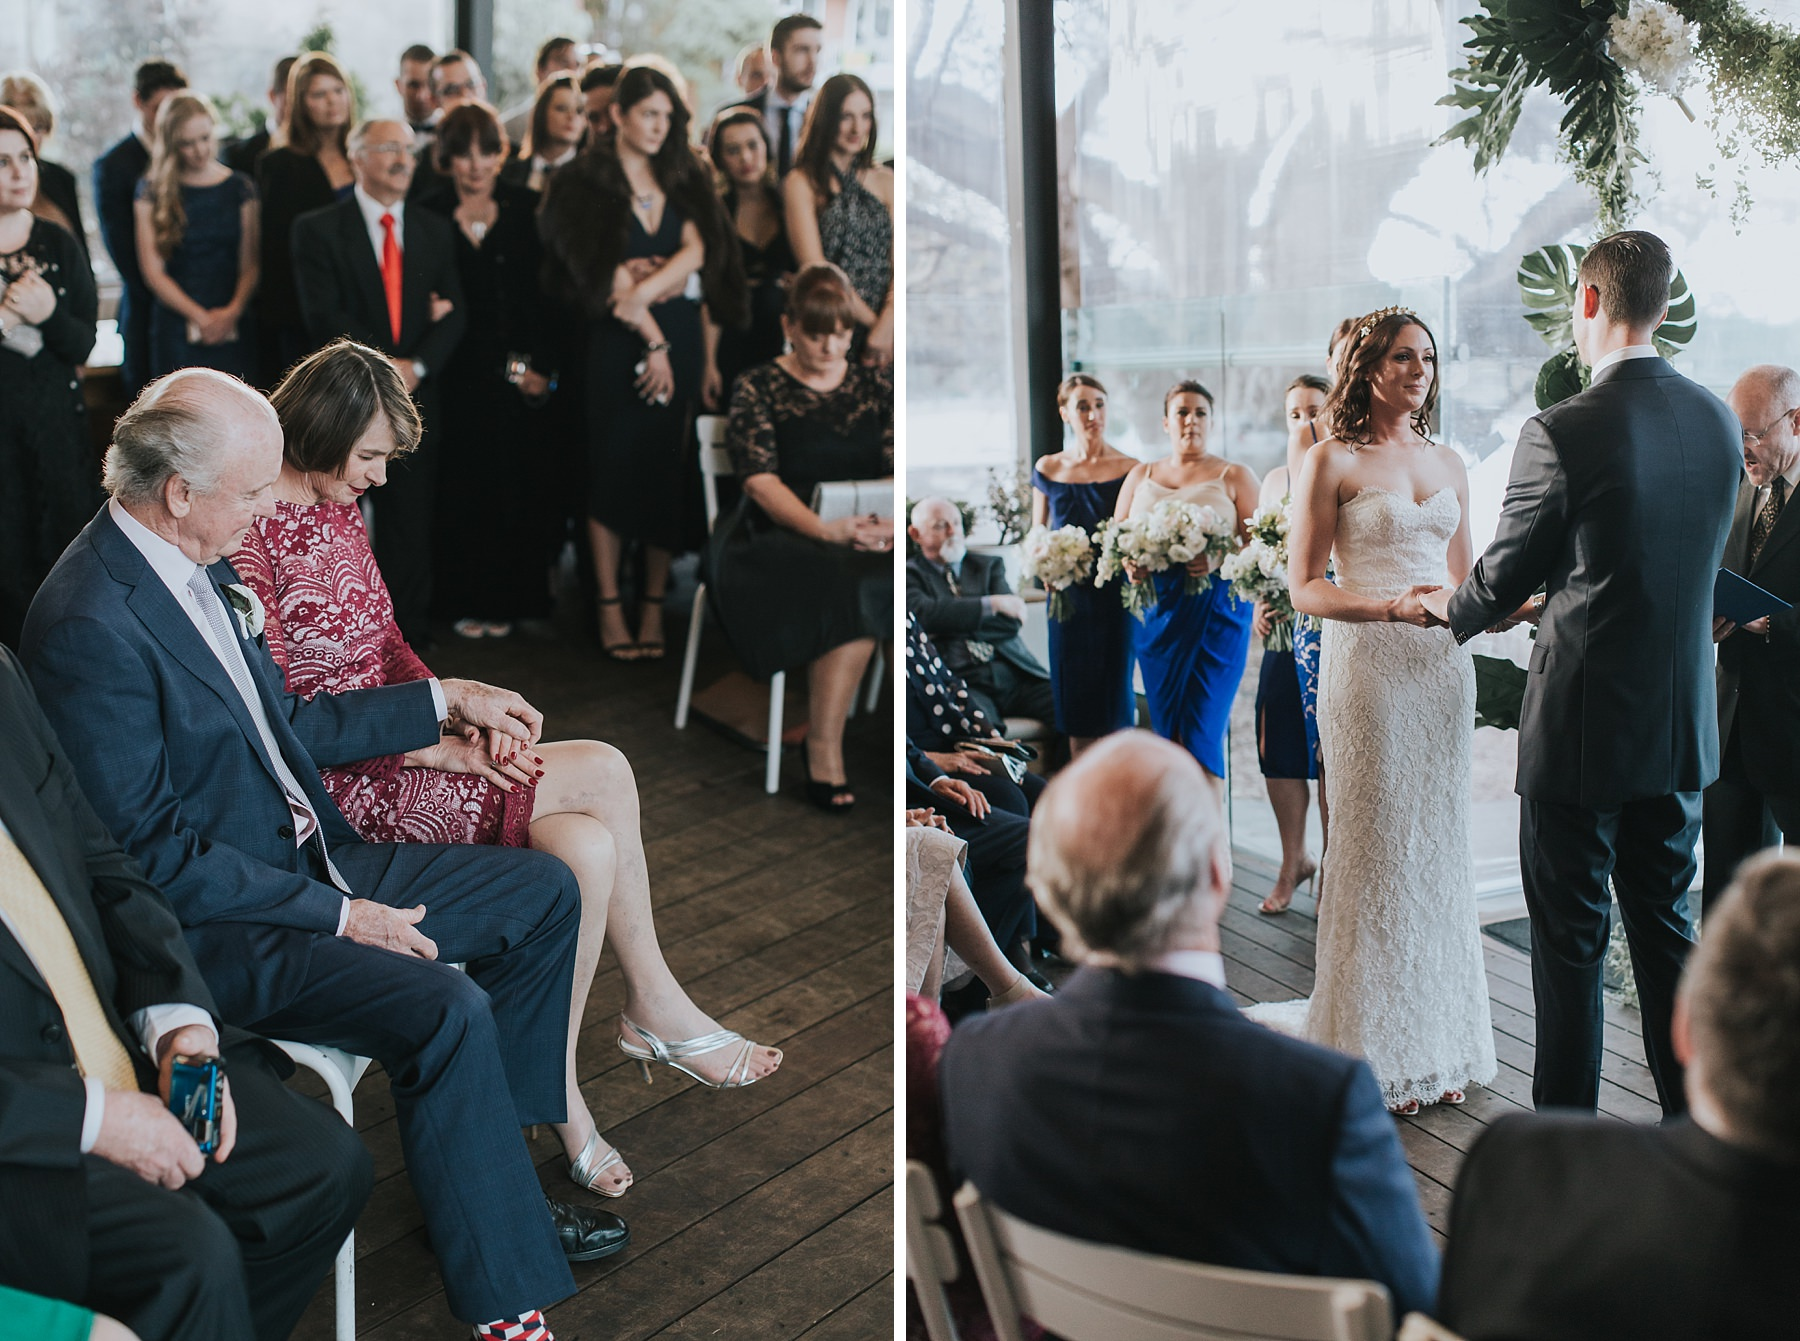 raw and honest moments on your wedding day